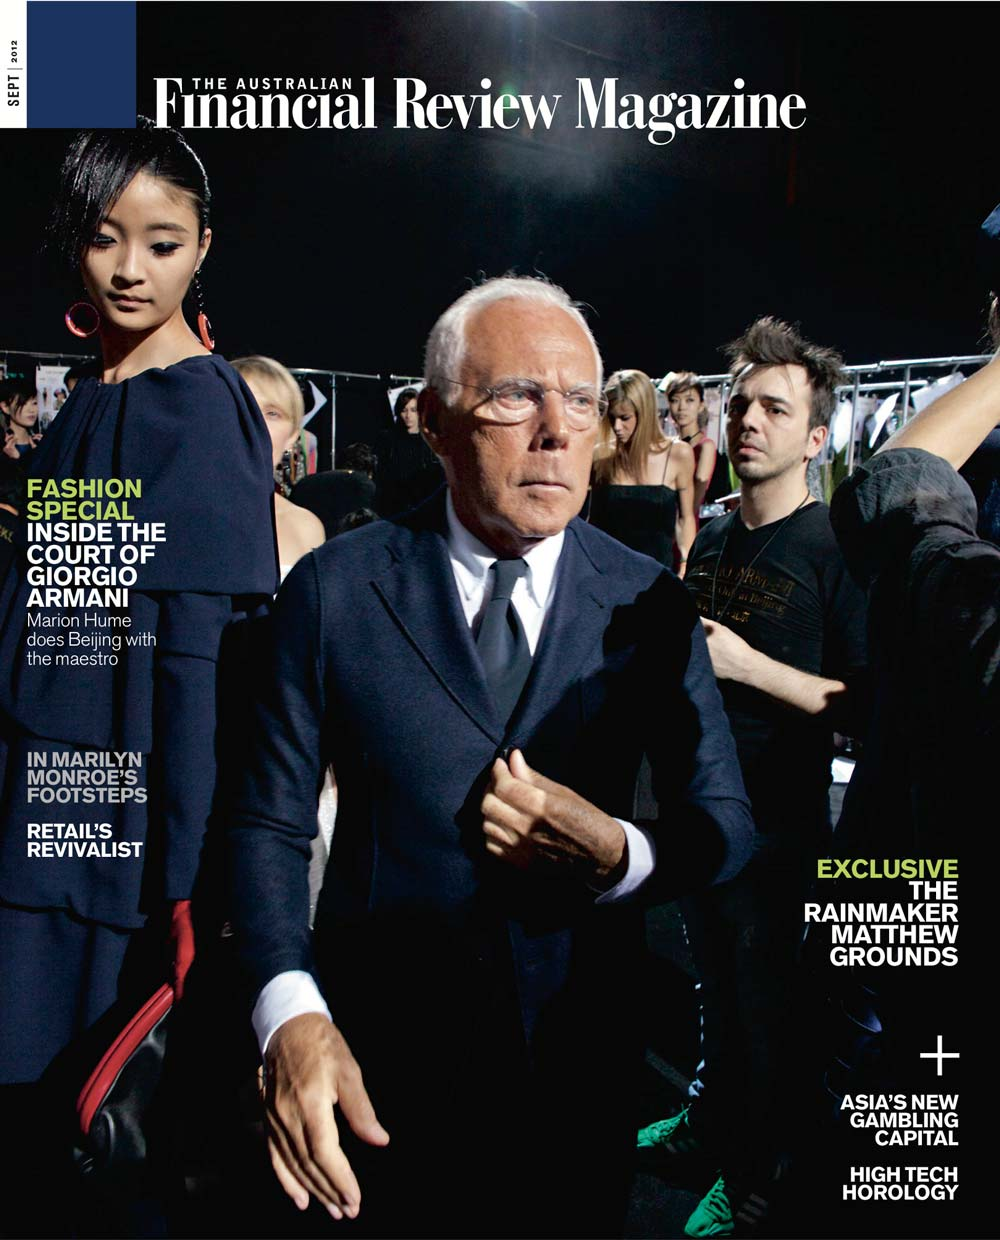 The Australian Financial Review Magazine - Giorgio Armani cover feature - August 2012